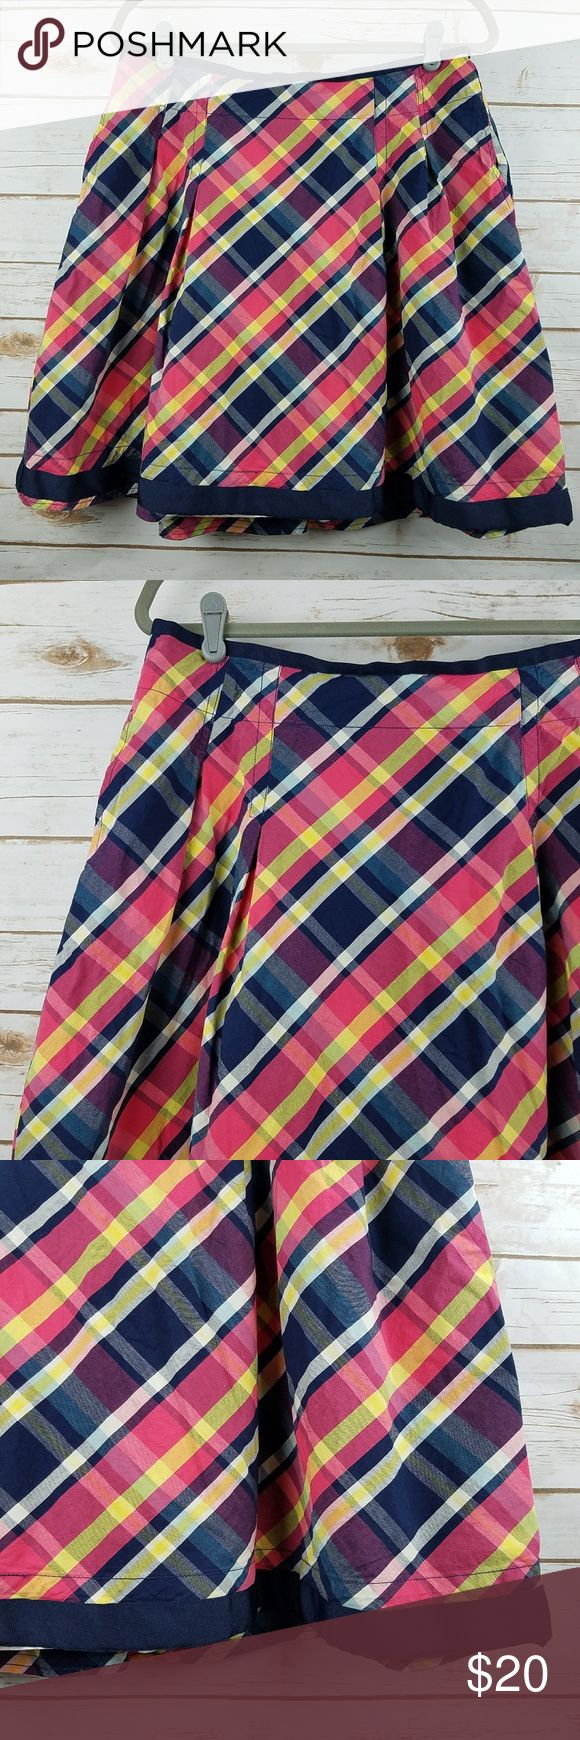 """LL BEAN Navy & Pink Plaid Skirt w/ Pockets Women's LL Bean Pleated Plaid Skirt 2 front pockets Pre-owned in good condition. No stains, rips or holes.   Tag Size: 10 Reg waist: 32"""" overall length: 20"""" *all measurements are approximate and taken with the item laying flat. L.L. Bean Skirts"""